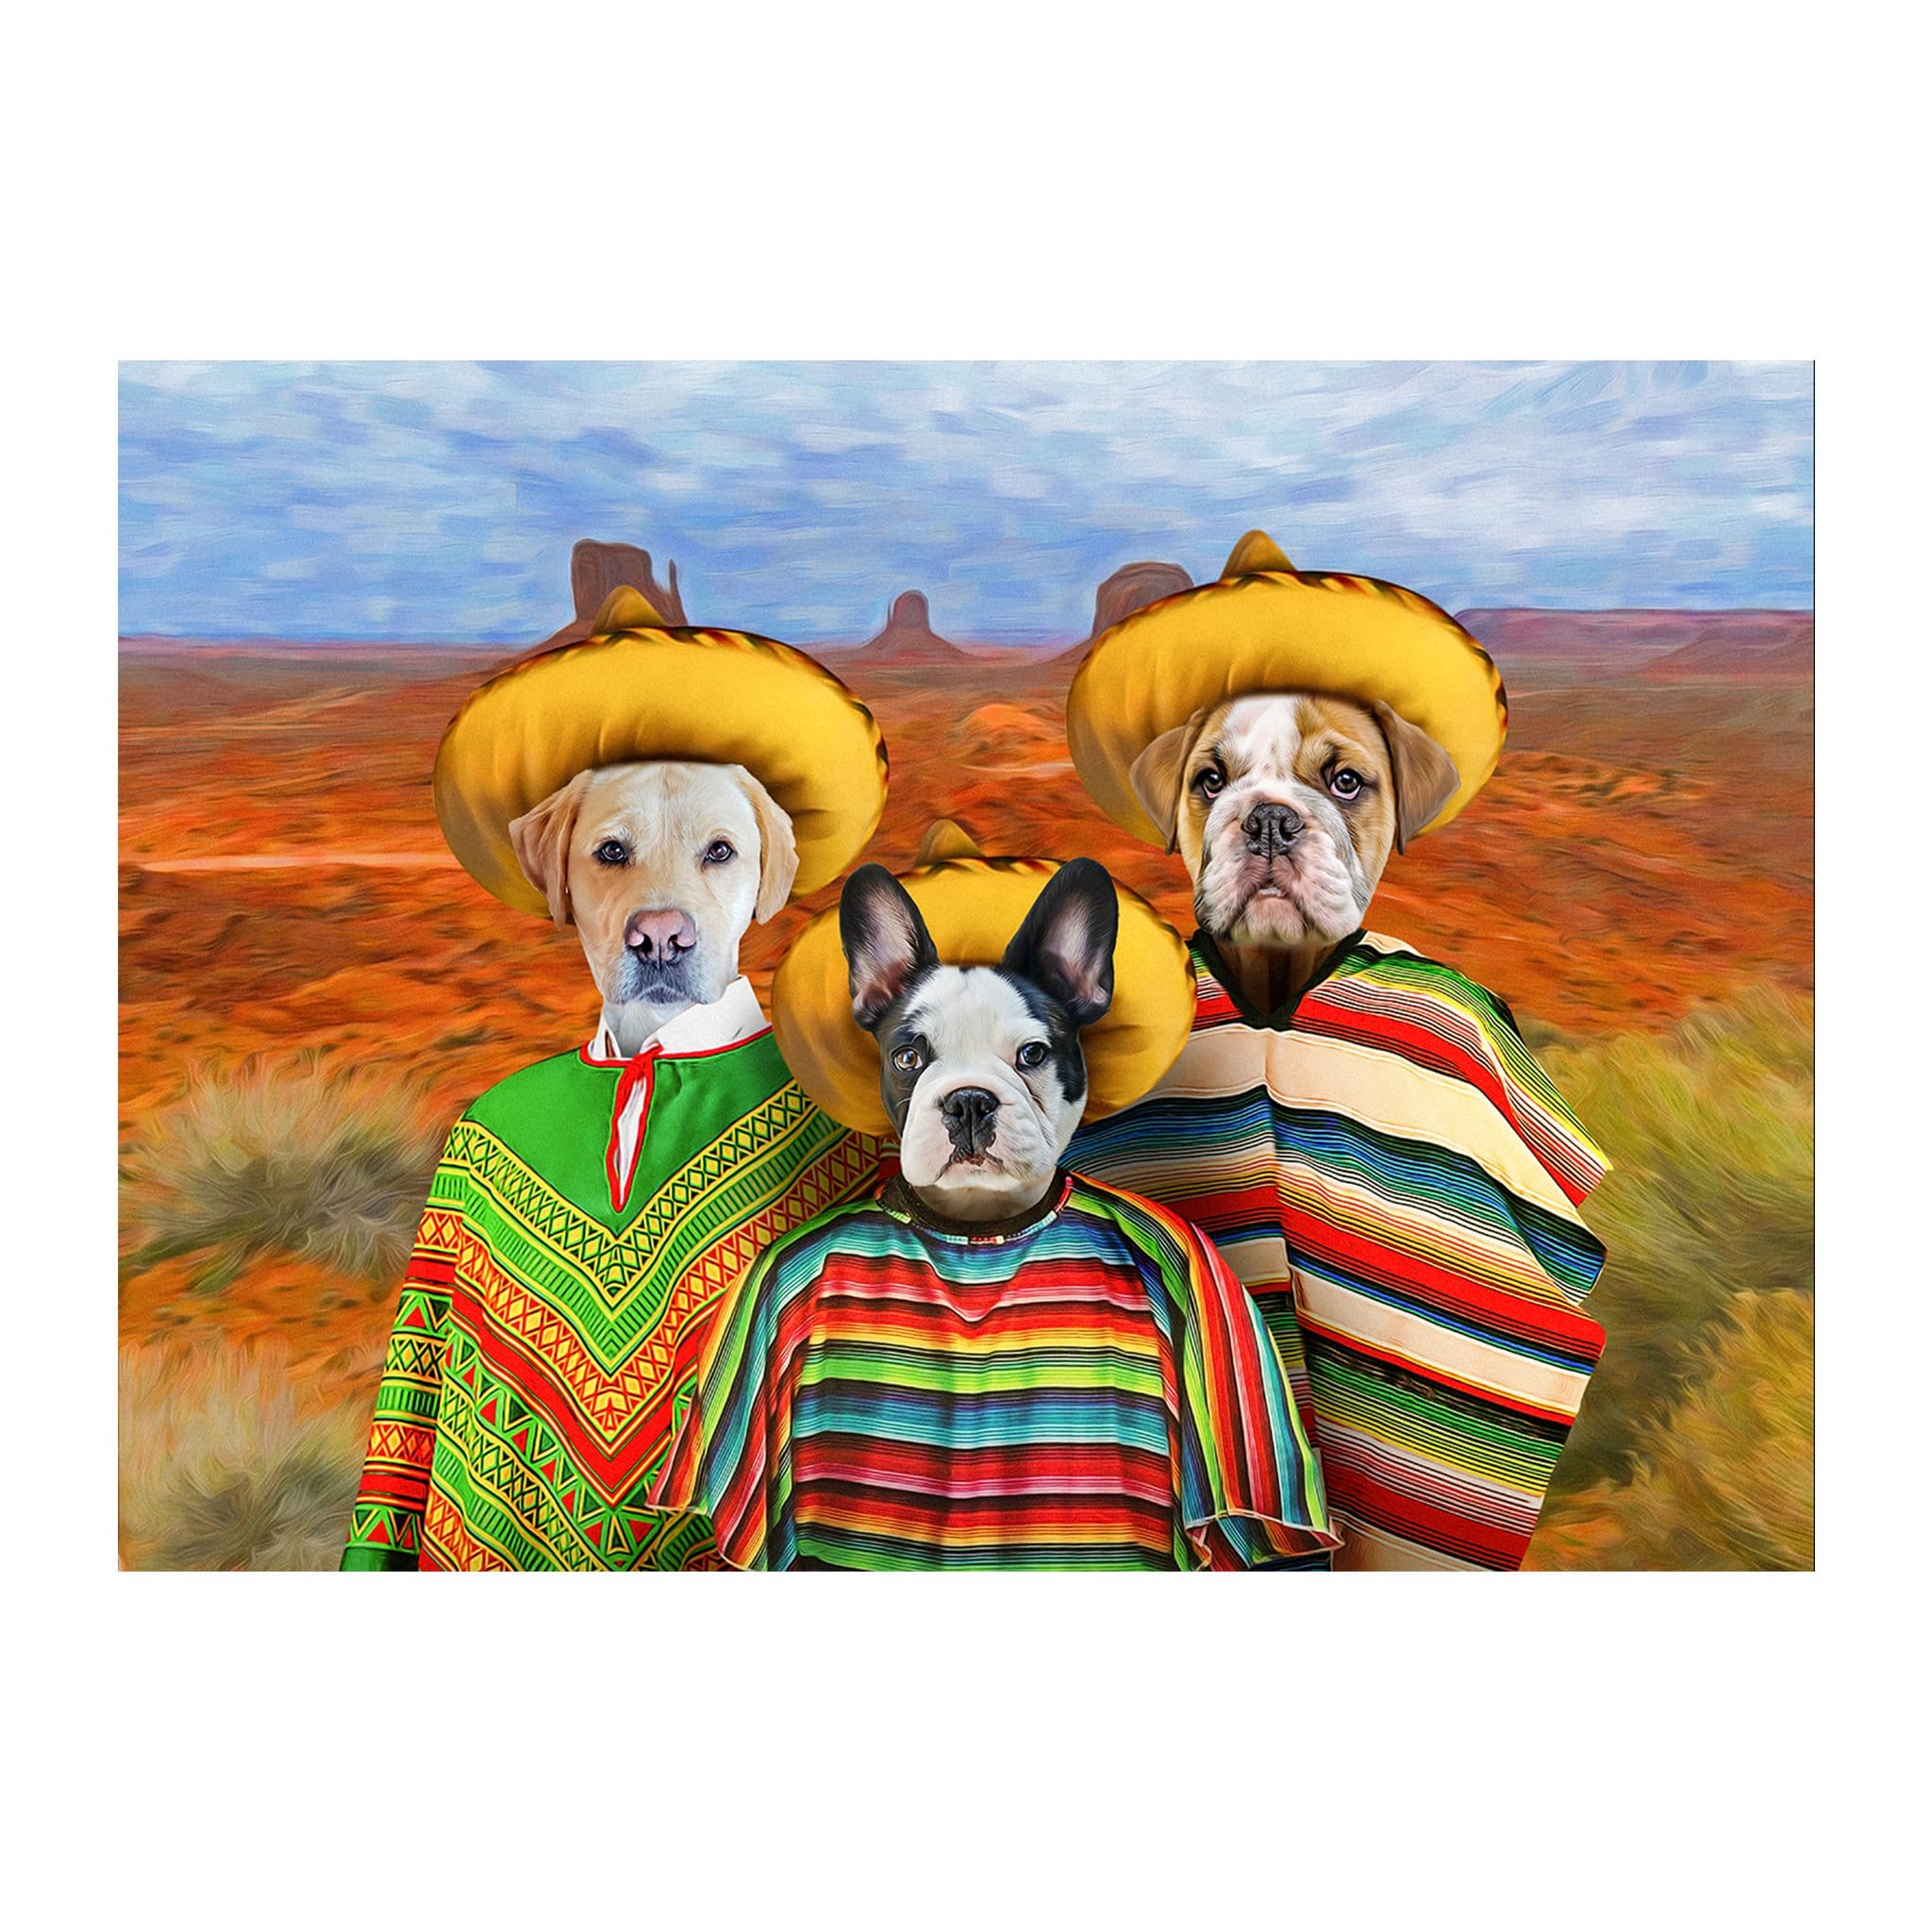 '3 Amigos' 3 Pet Digital Portrait